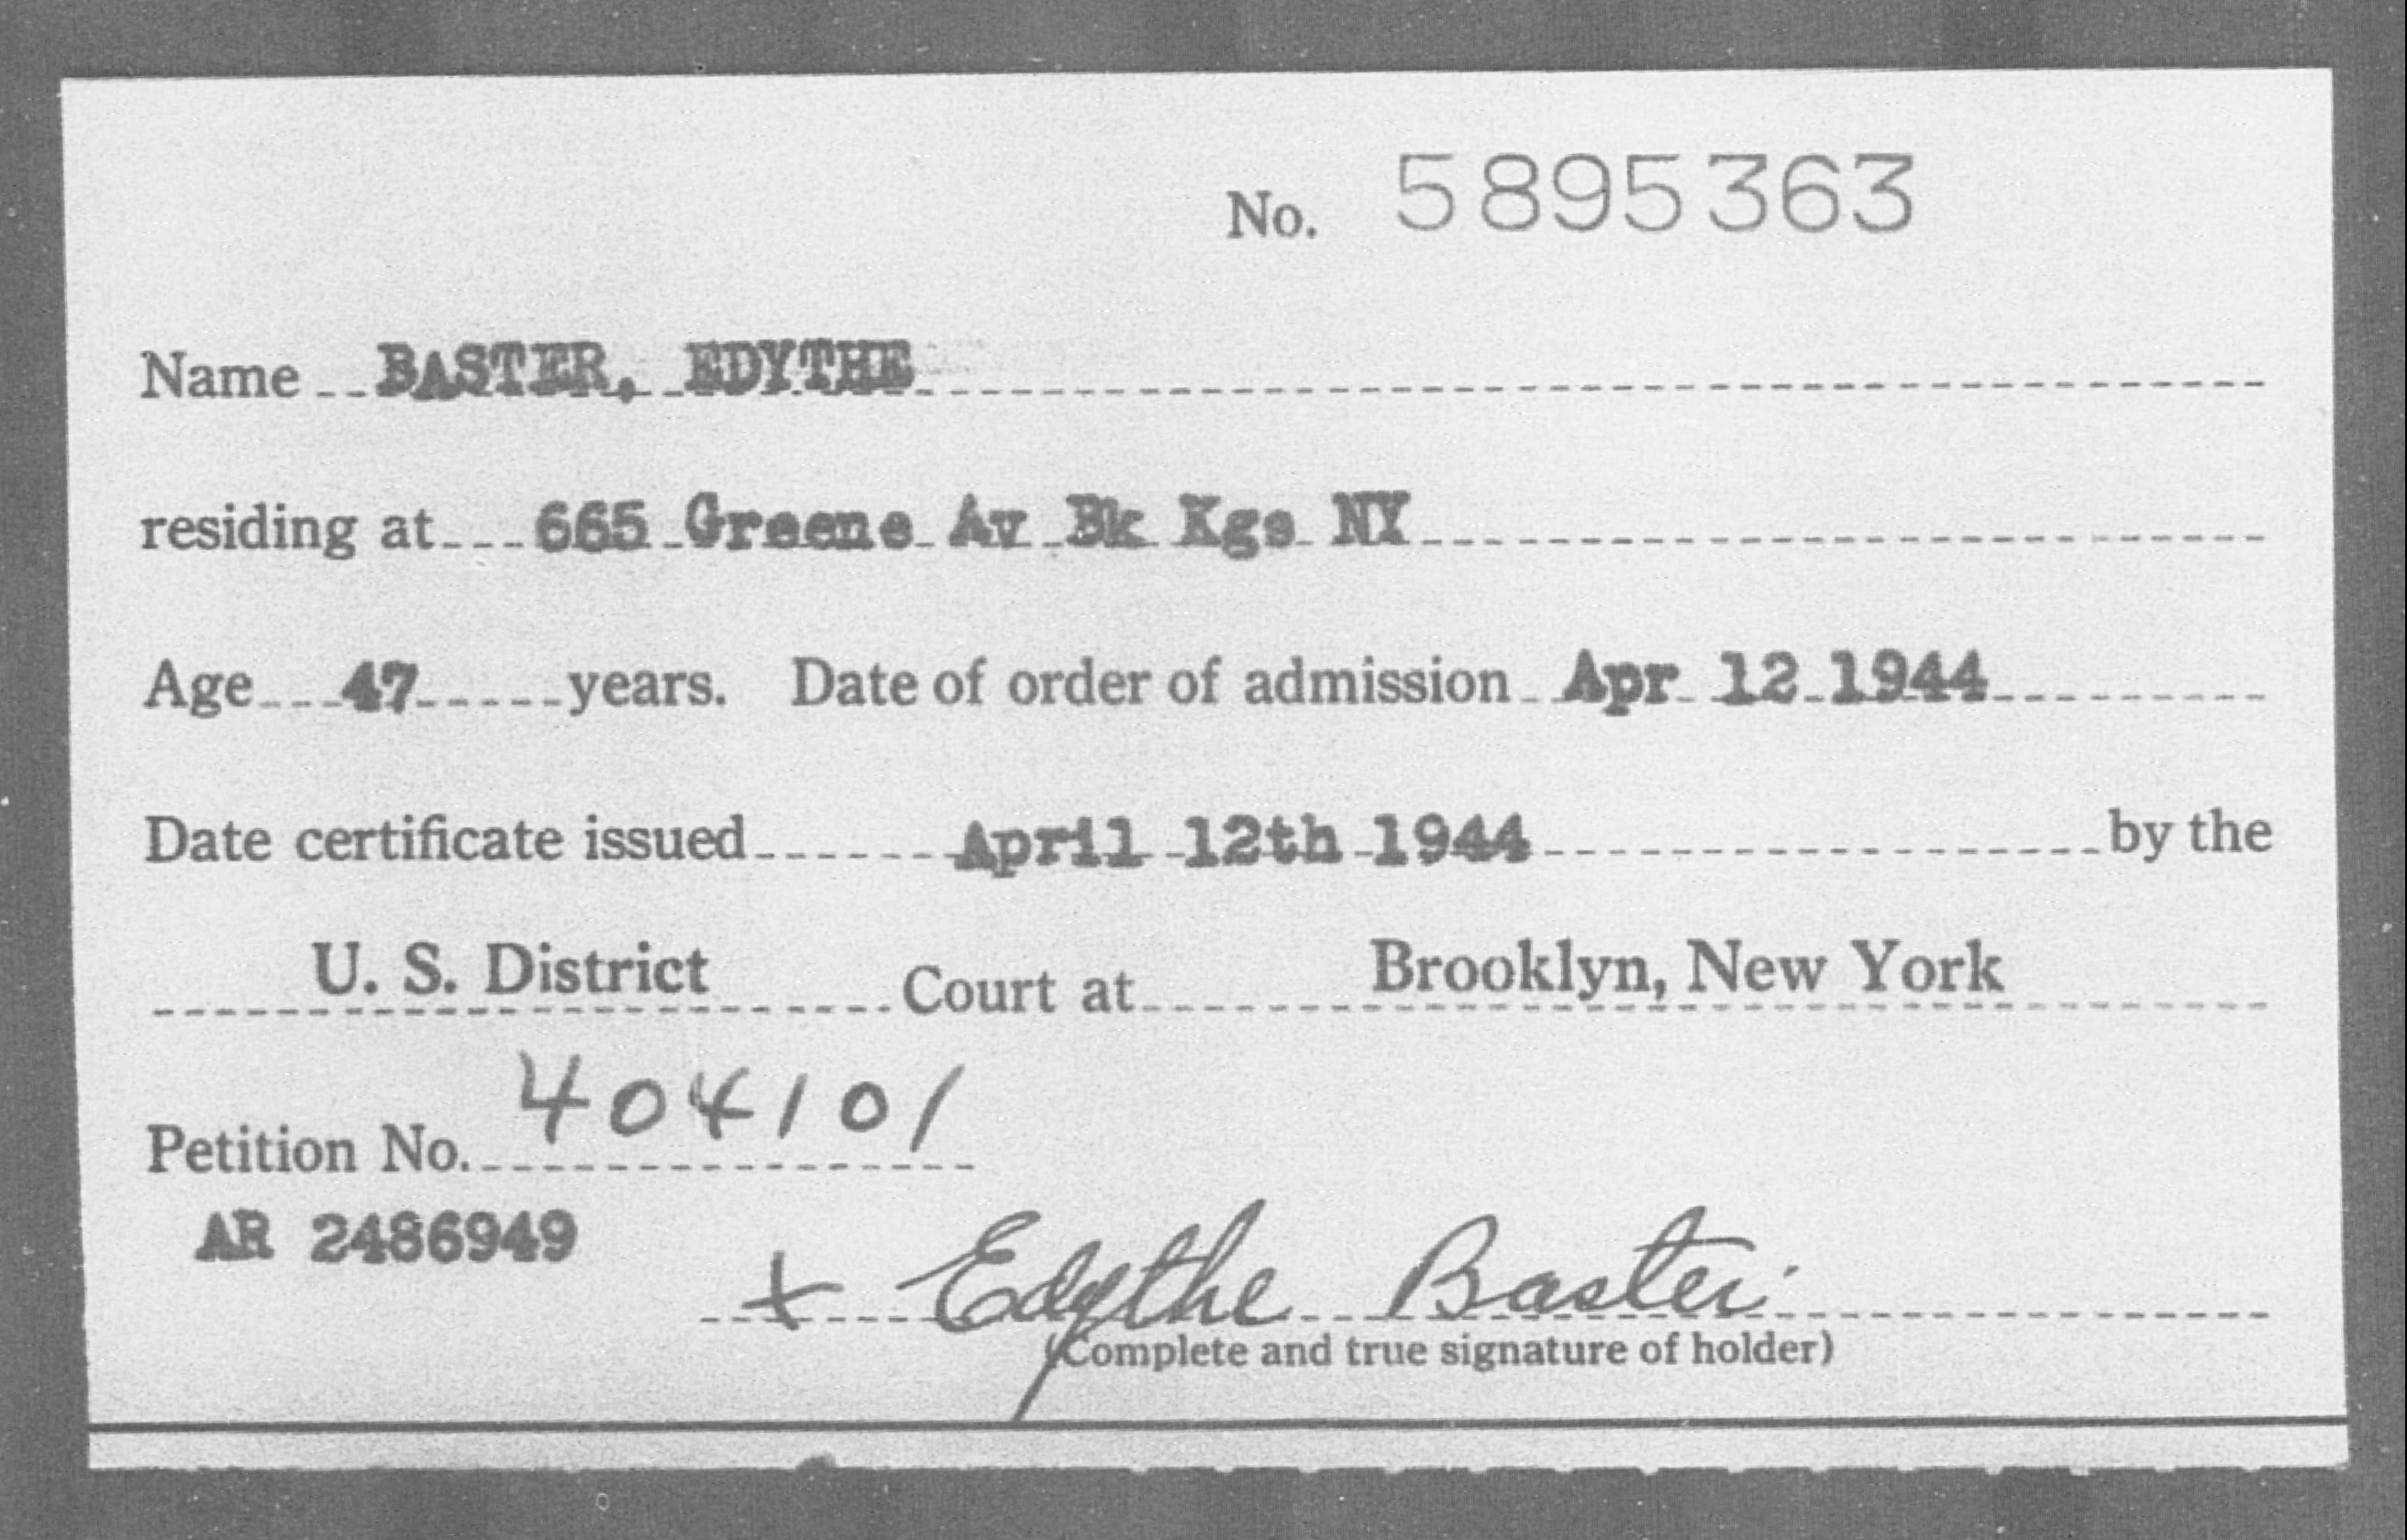 Baster, Edythe - Born: [BLANK], Naturalized: 1944